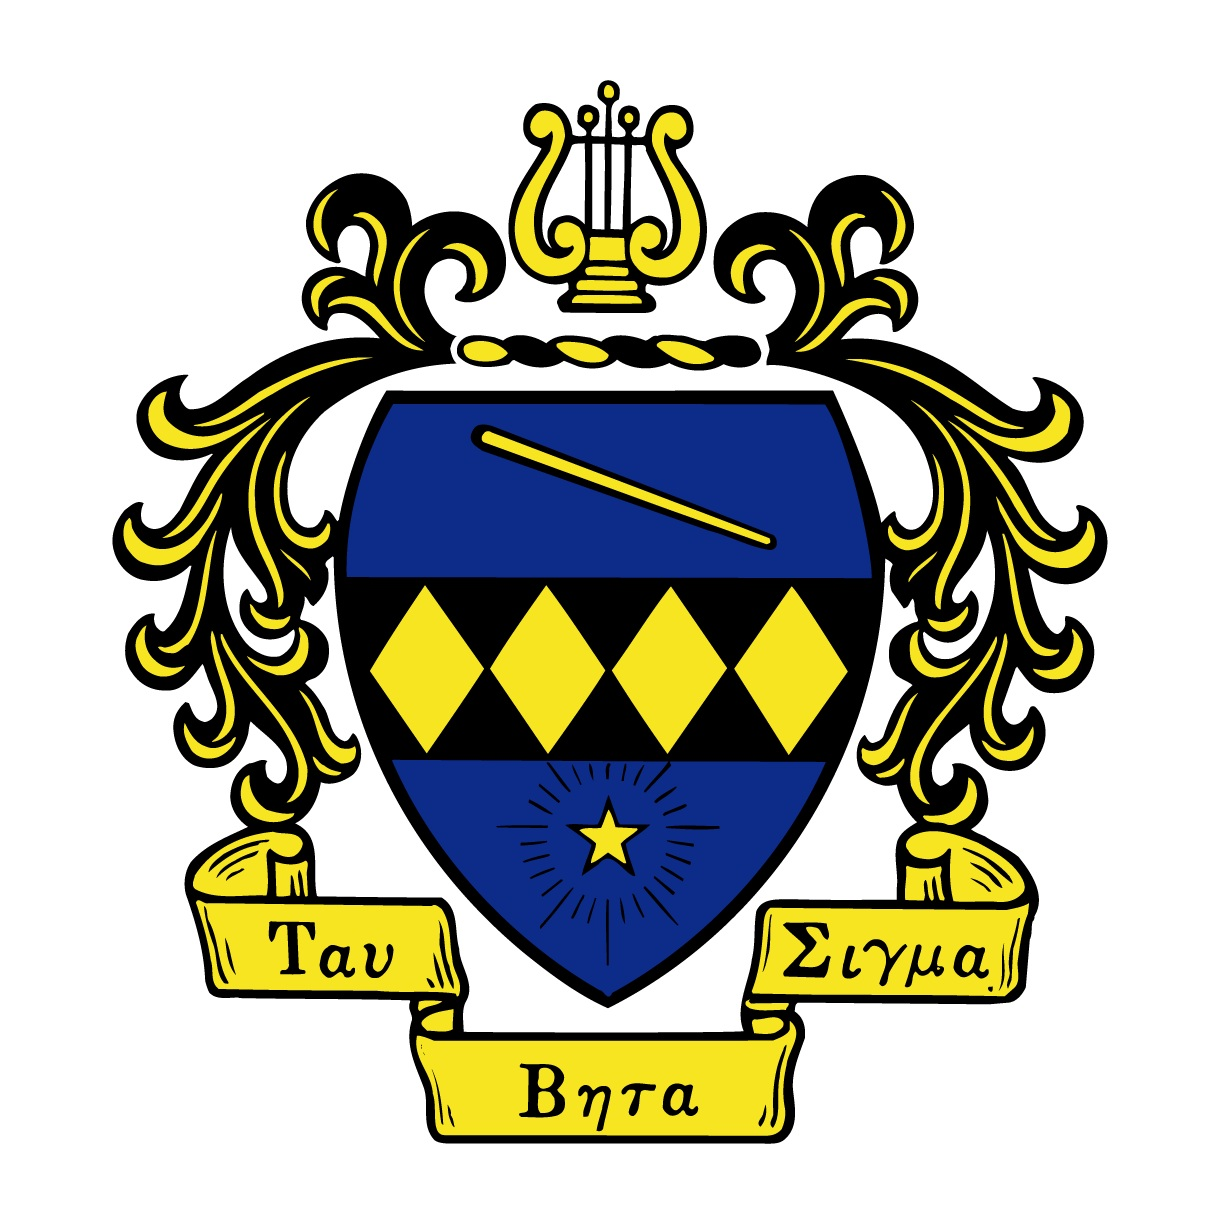 tbs-officialcrest.jpg